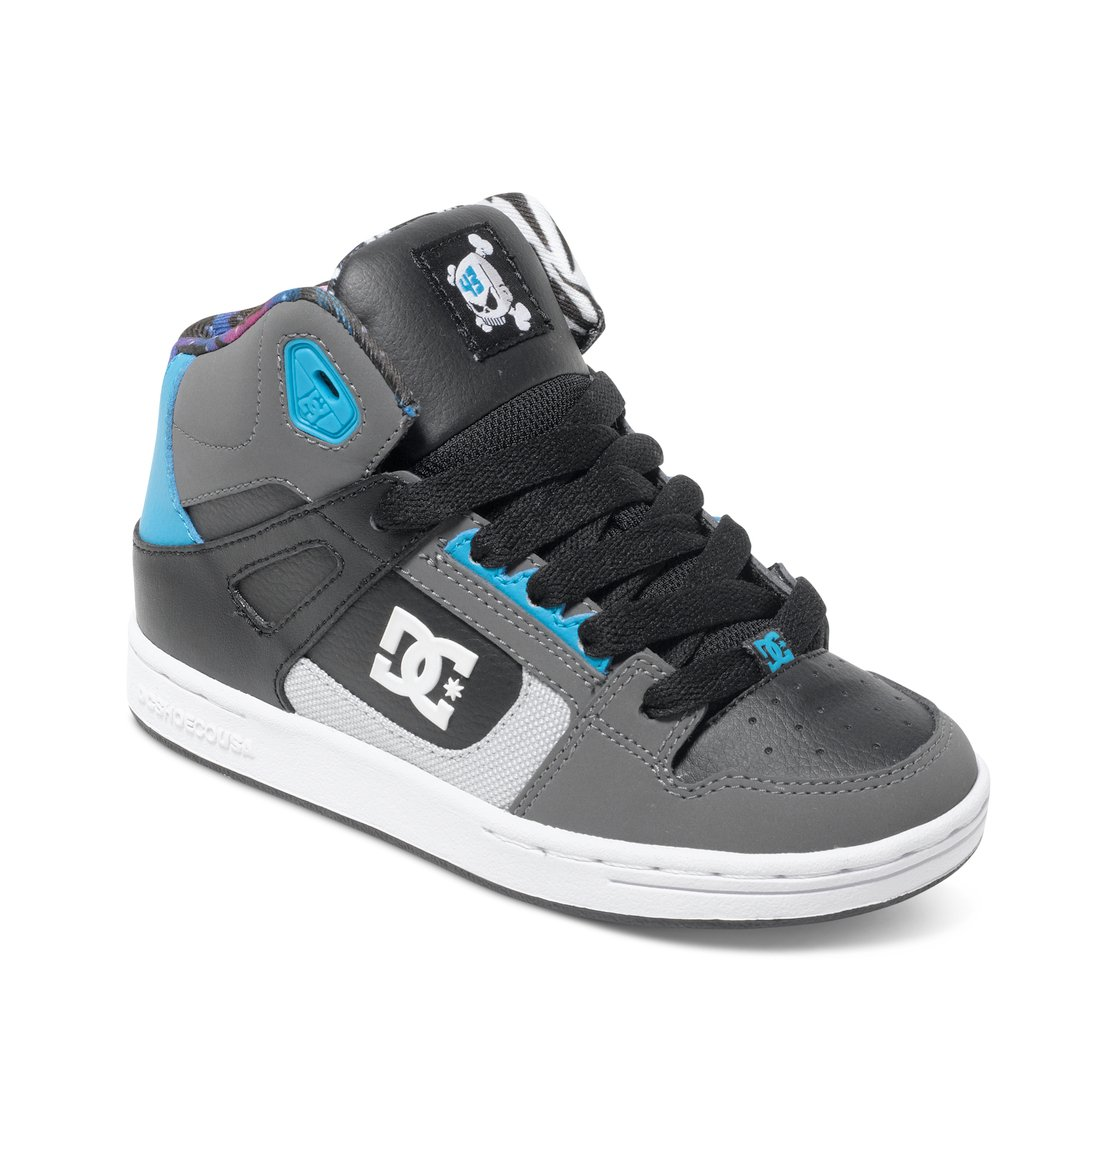 boy 39 s 8 16 rebound ken block high top shoes adbs100149. Black Bedroom Furniture Sets. Home Design Ideas